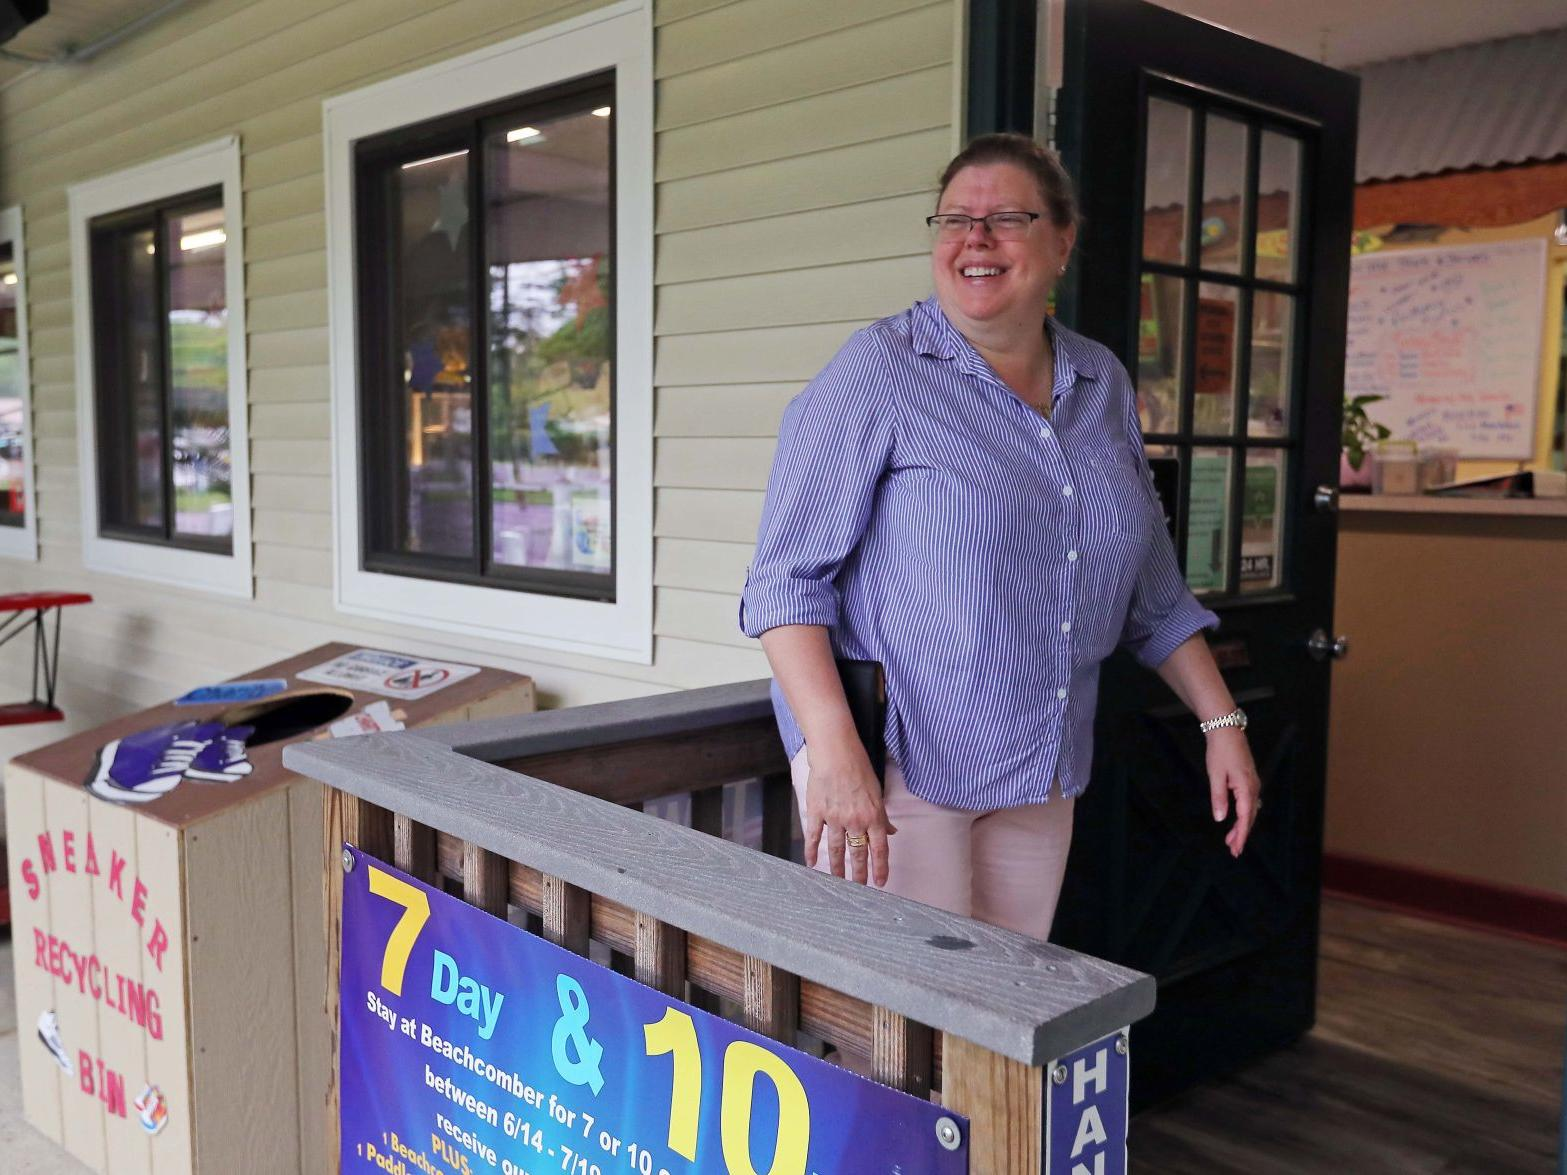 Cape May couple 'mayors' of family-owned camping resort